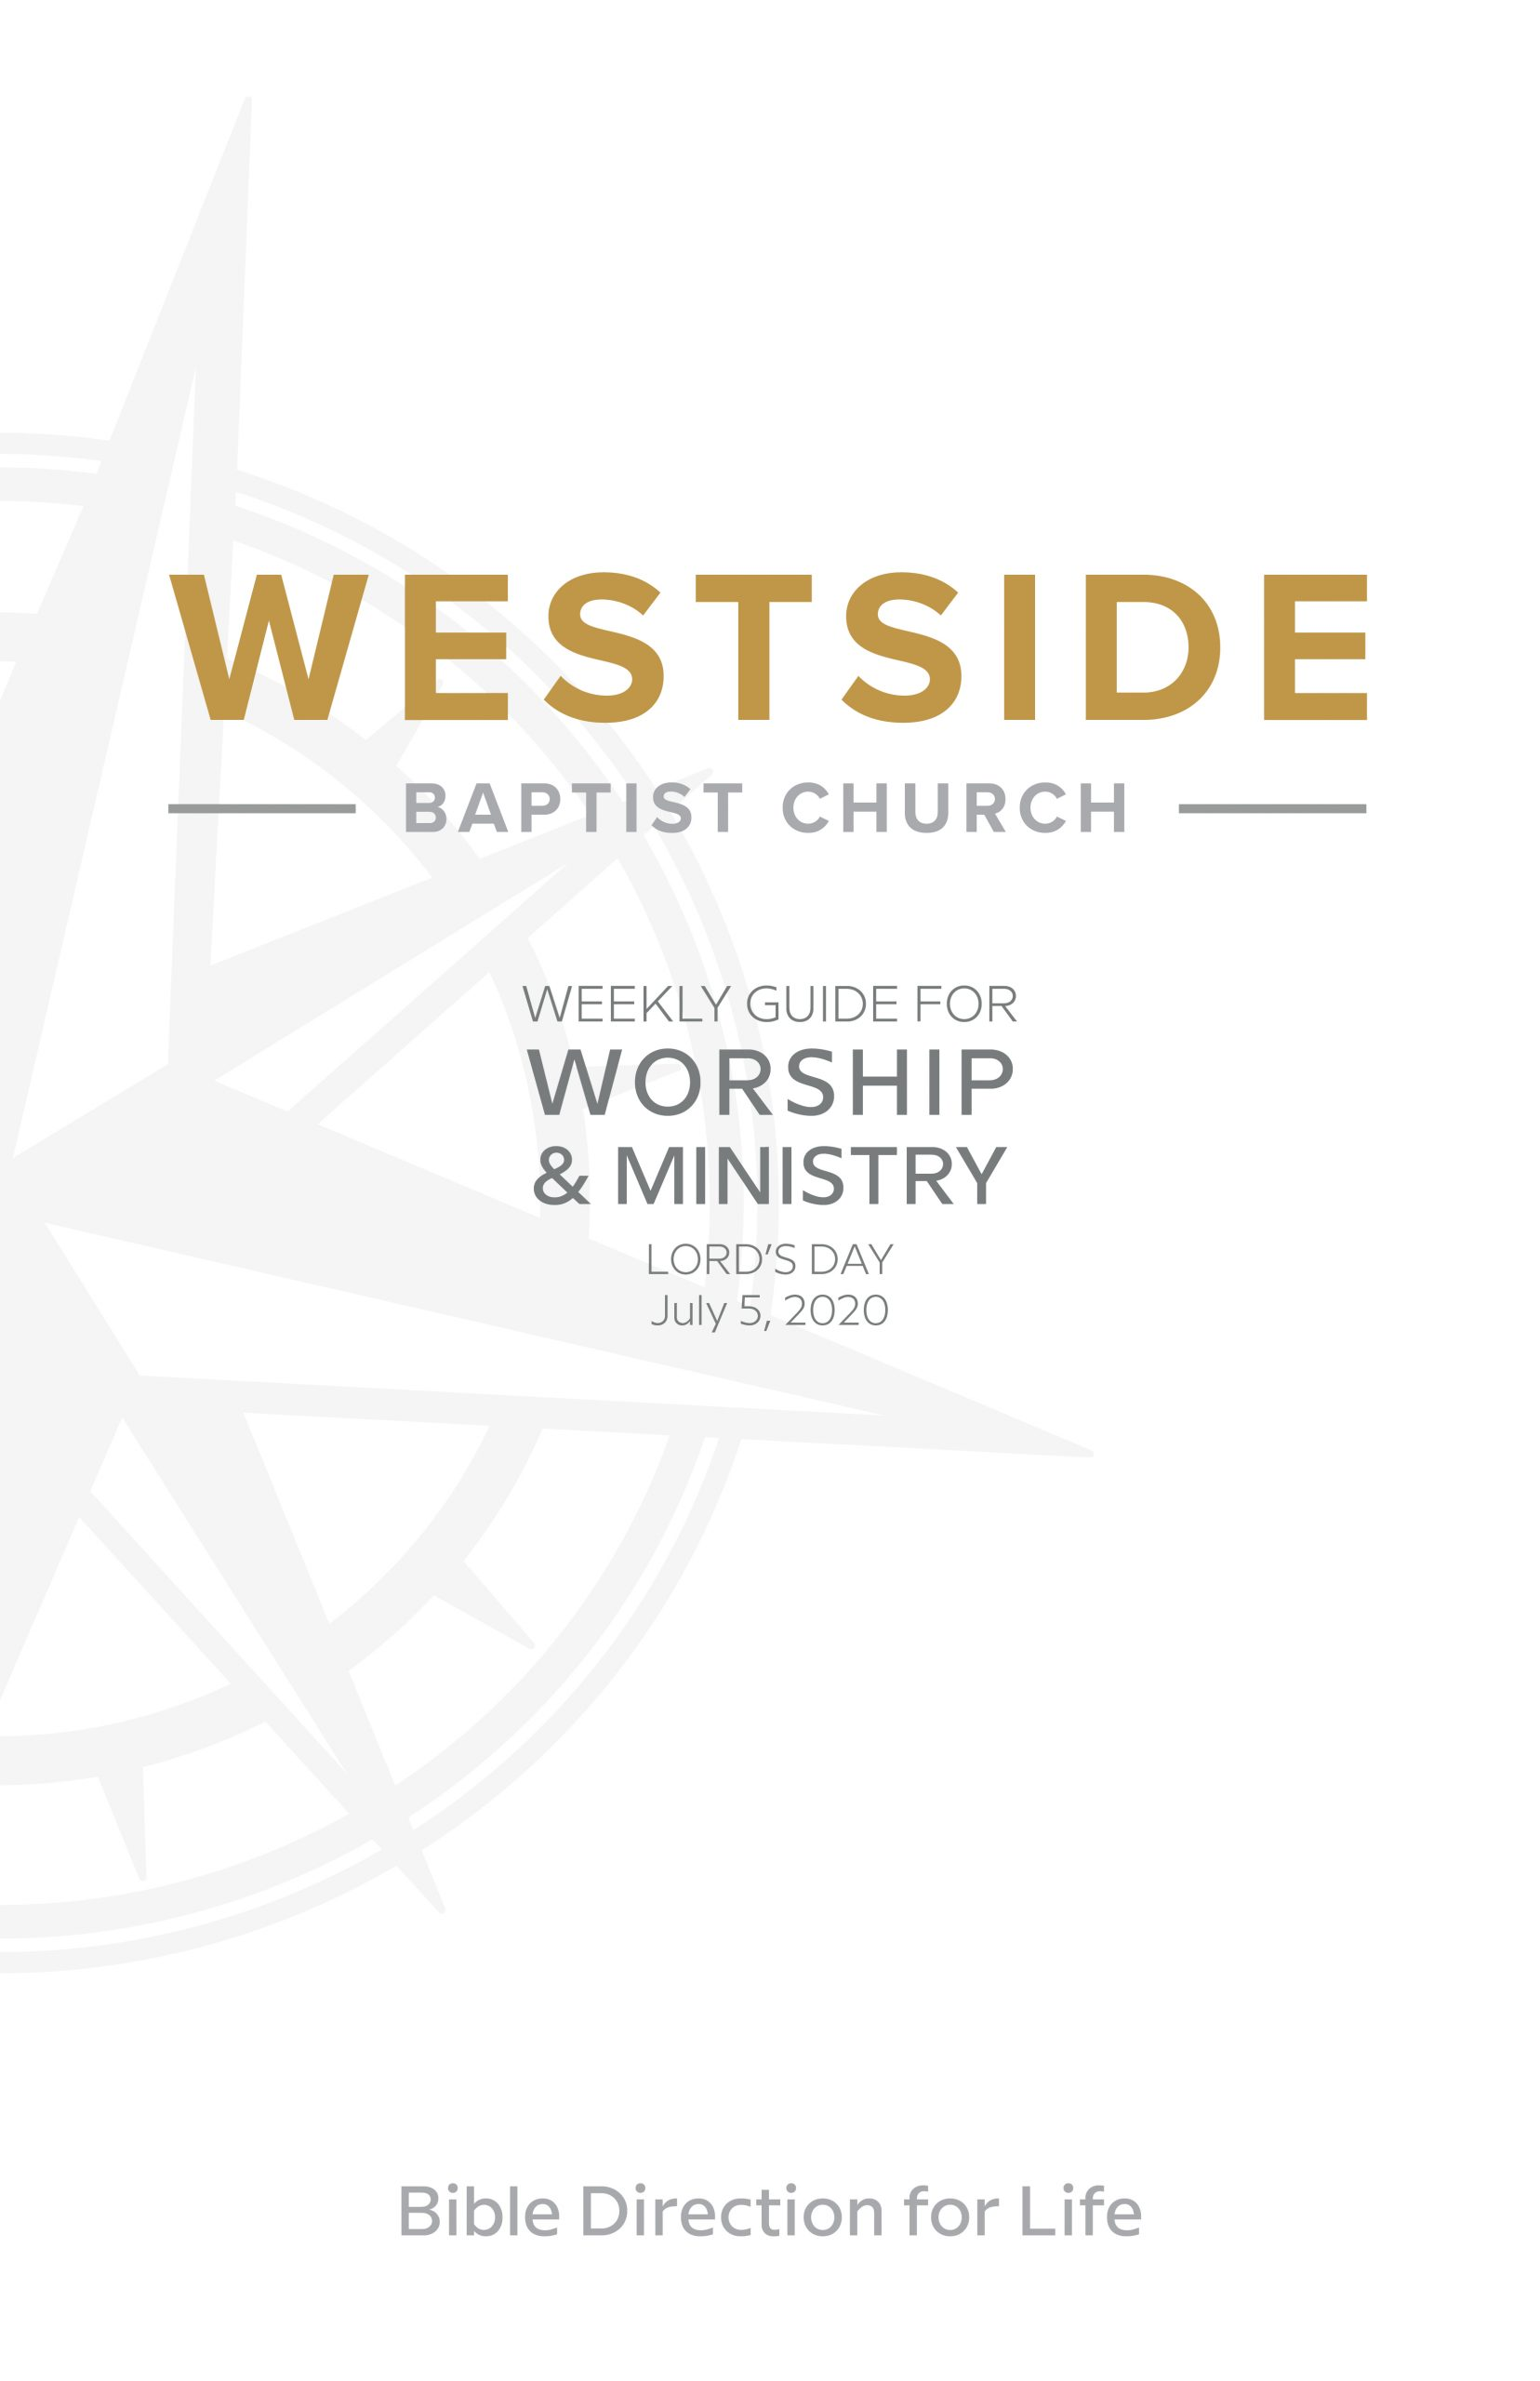 Weekly Guide for Worship and Ministry — July 5